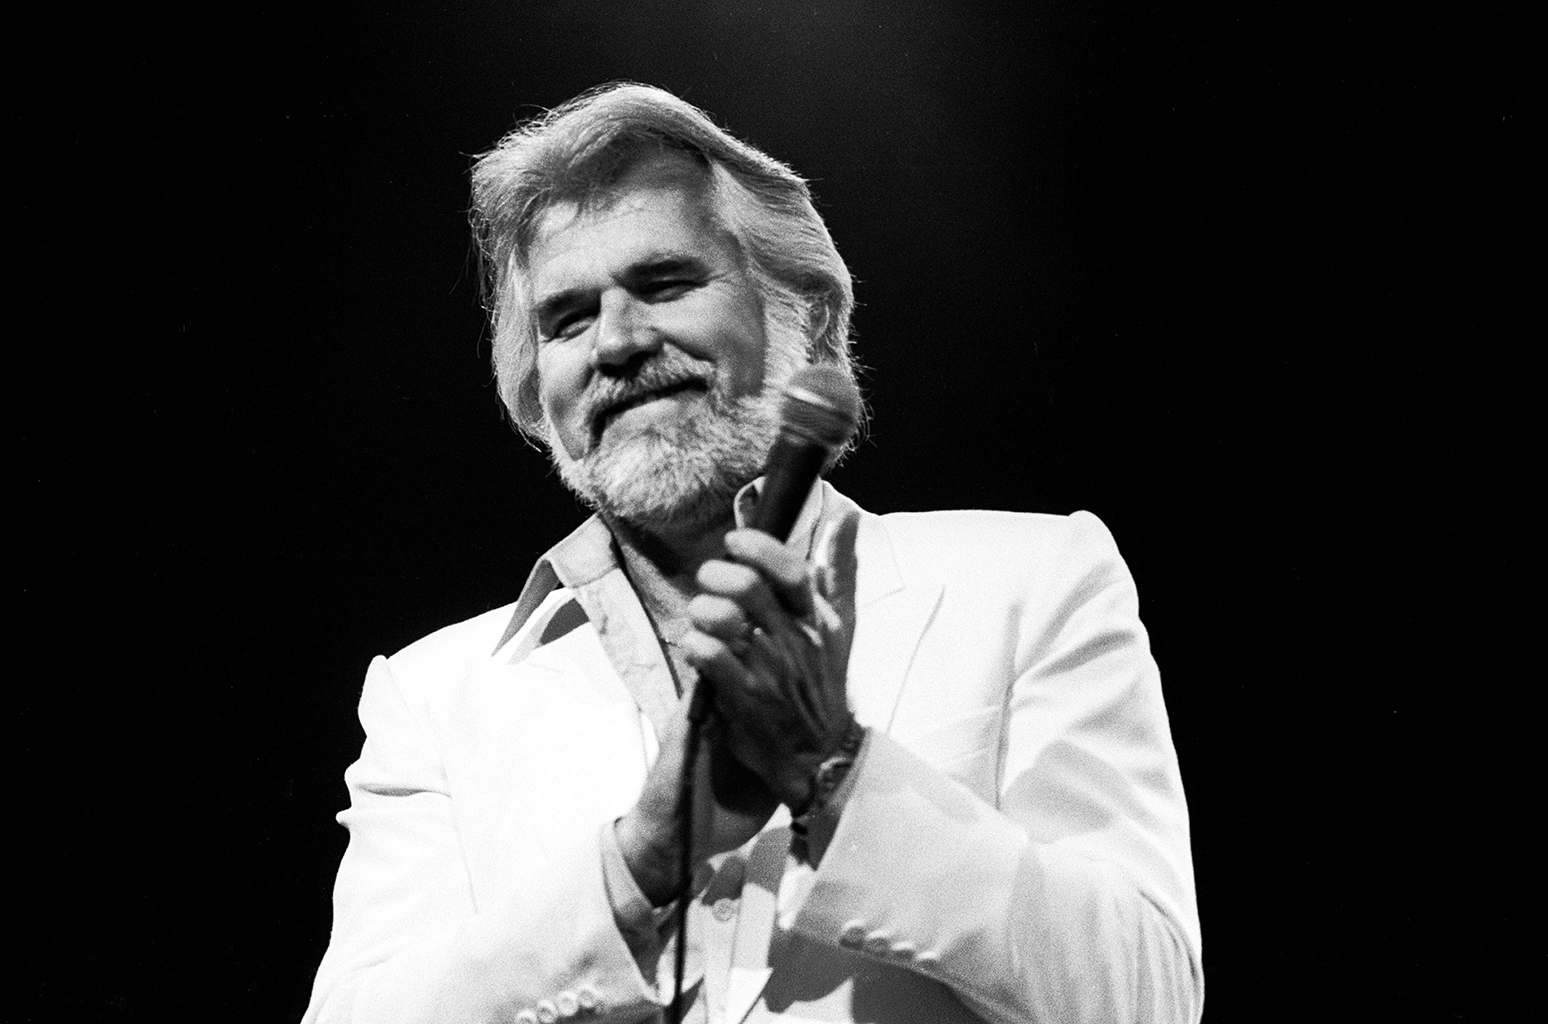 Kenny Rogers Music Streams Increase 1,686% as Fans Mourn Country Star's Death